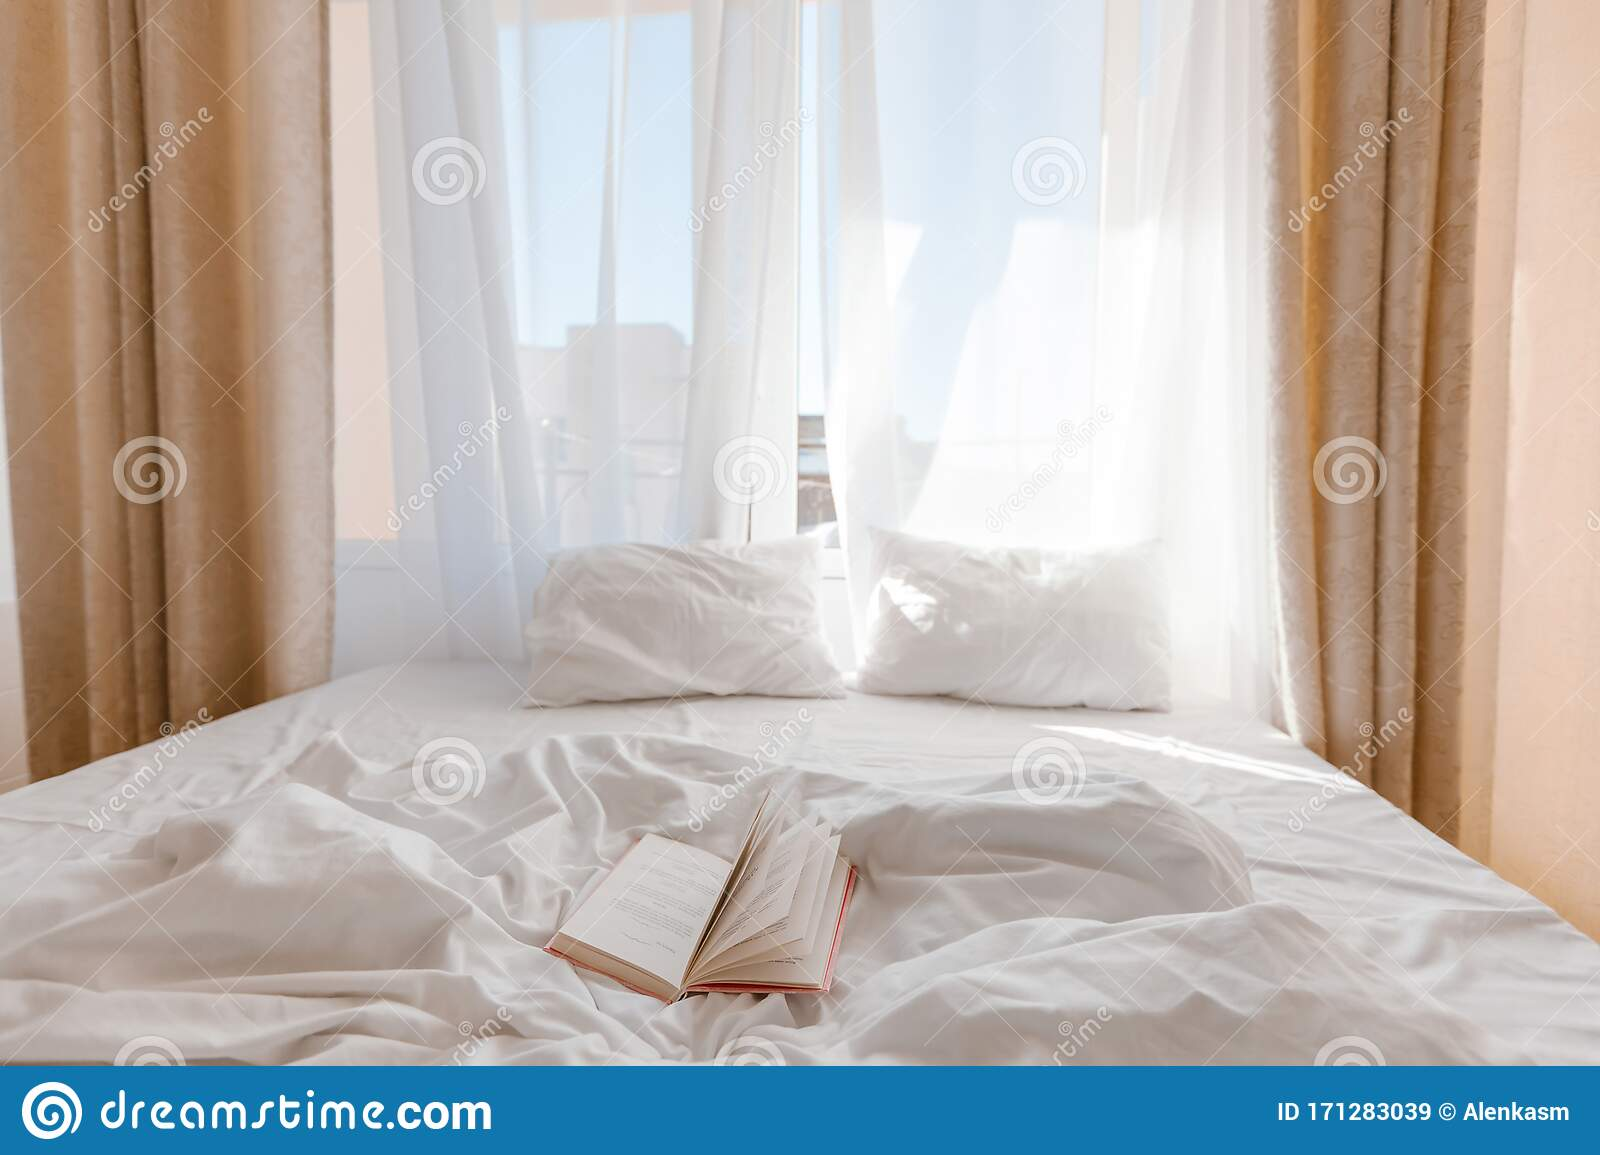 Book On Bed With White Linen In Front Of Window With Morning Light Through Curtains Stock Image Image Of Inspiration Resort 171283039